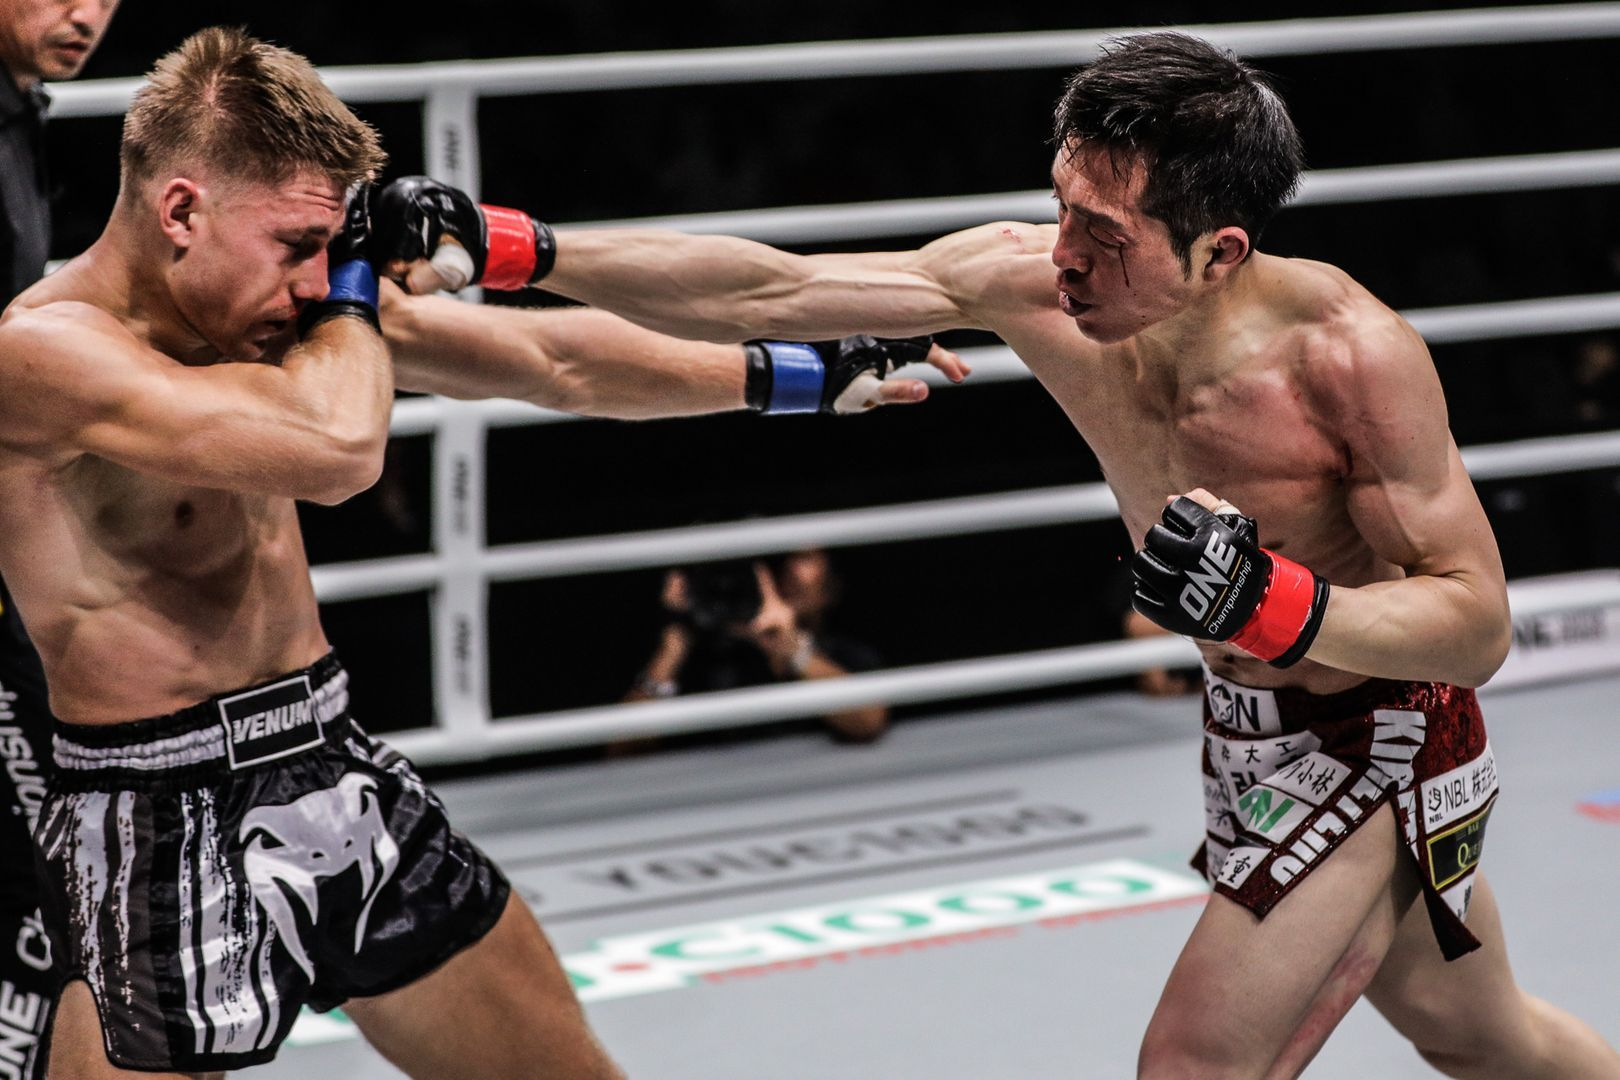 Kenta Yamada defeats Deividas Danyla in a Muay Thai match by split decision at ONE: FOR HONOR